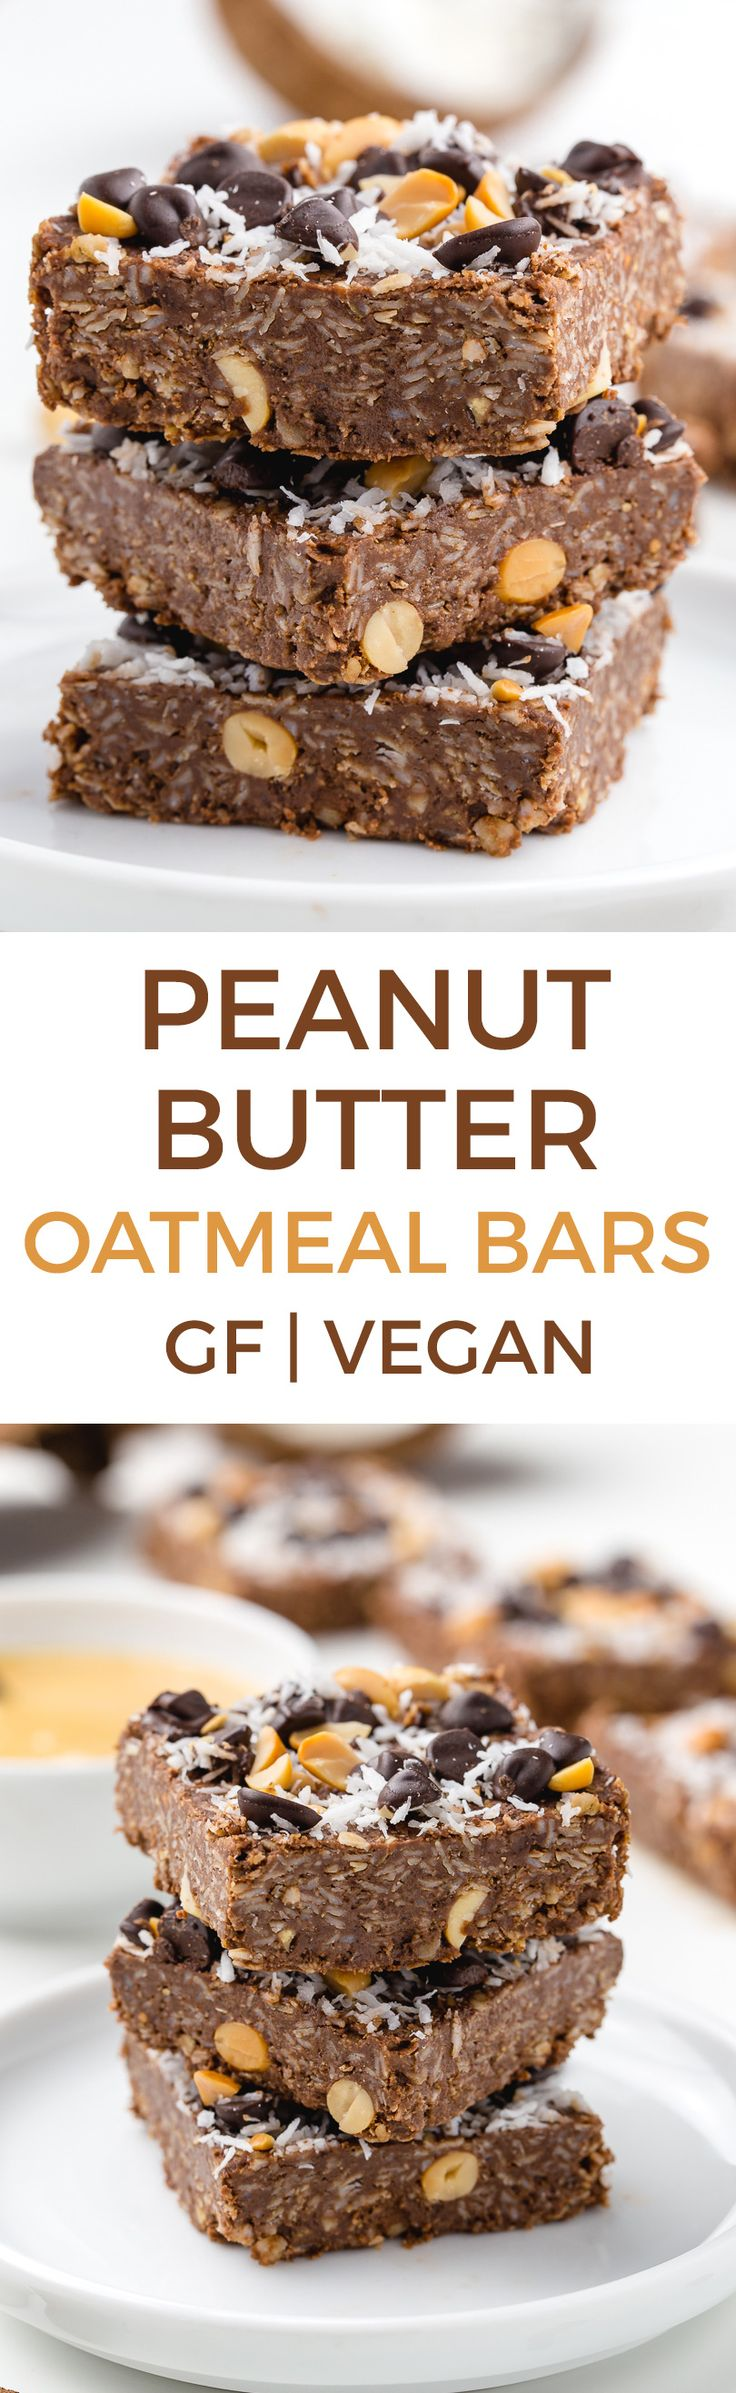 These peanut butter oatmeal bars are super quick, easy, no-bake and naturally gluten-free and 100% whole grain. With a vegan option.